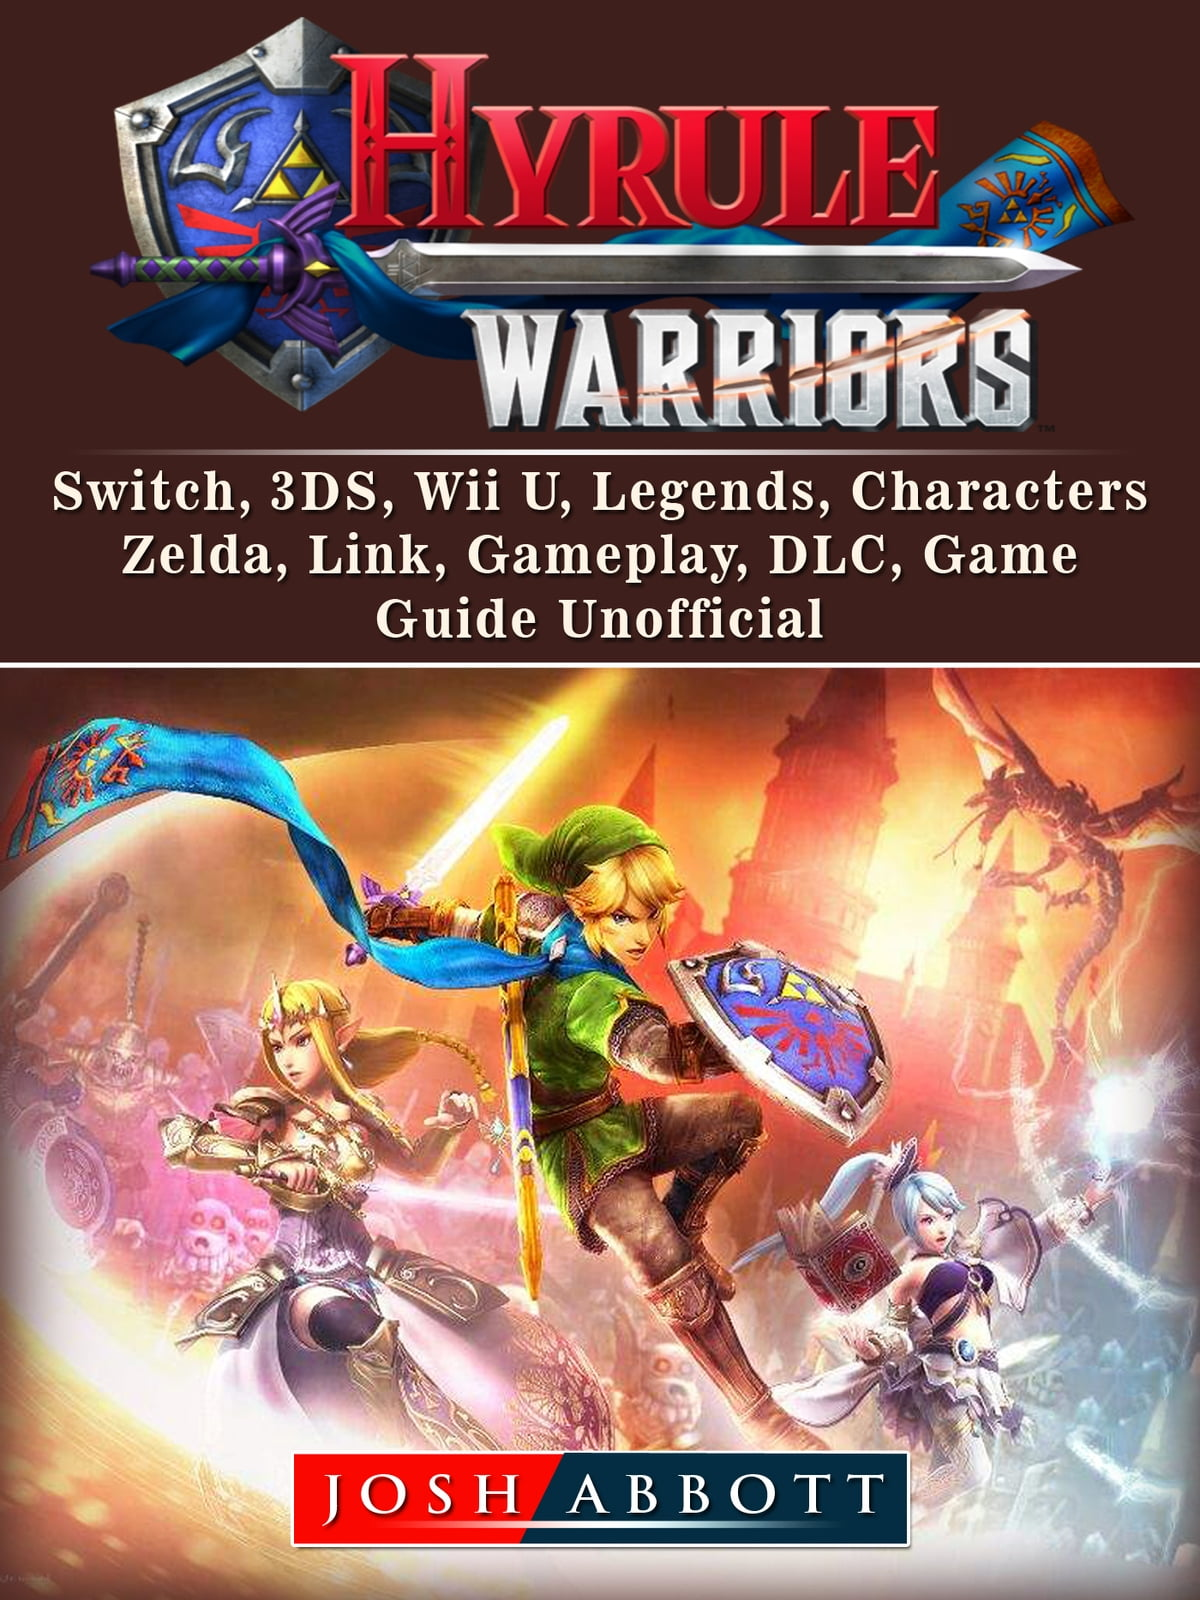 Hyrule Warriors, Switch, 3DS, Wii U, Legends, Characters, Zelda, Link,  Gameplay, DLC, Game Guide Unofficial ebook by Josh Abbott - Rakuten Kobo